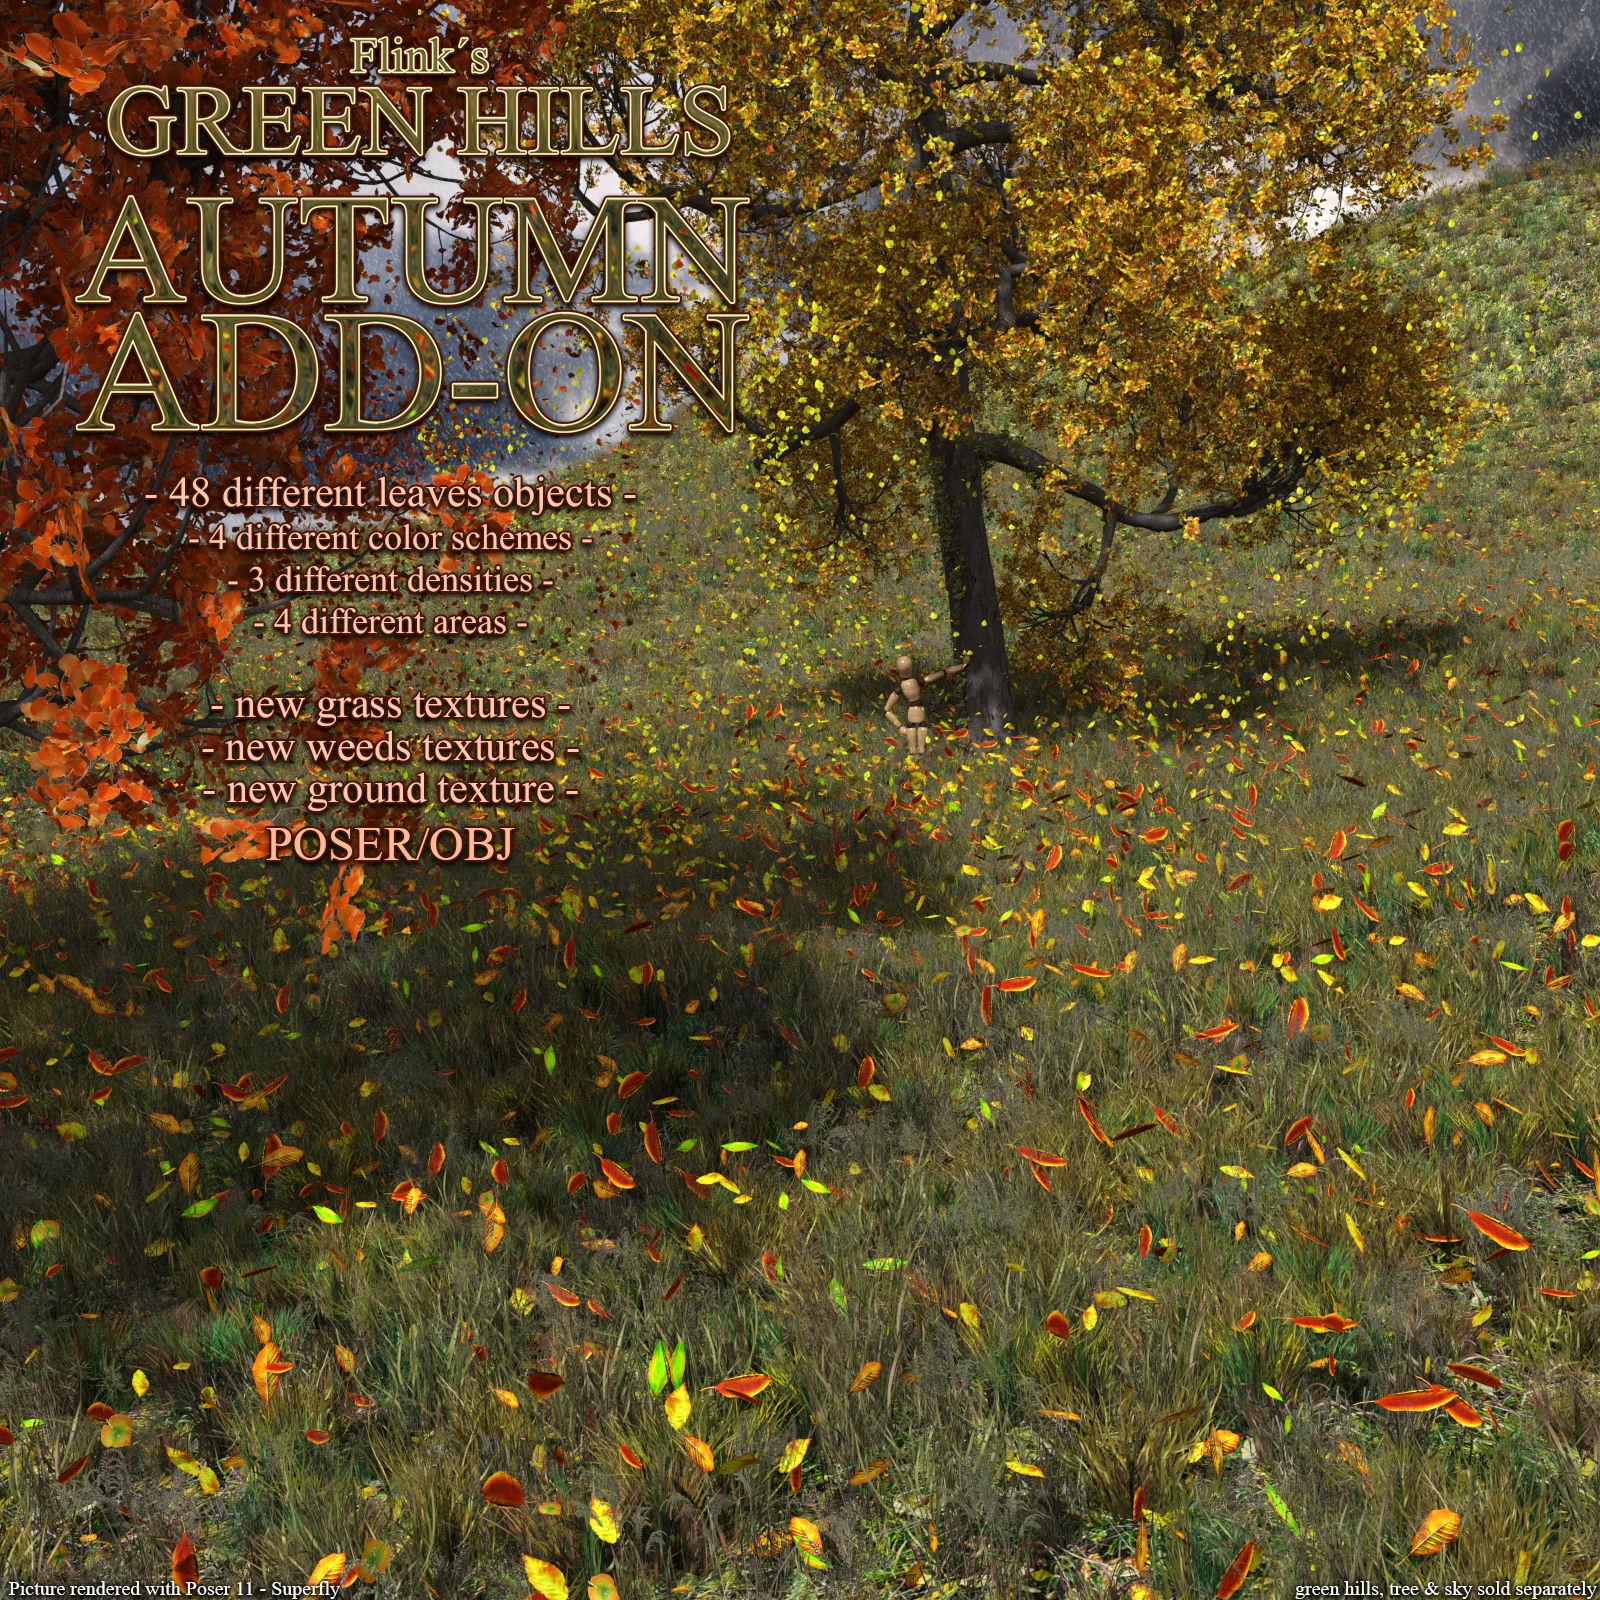 Flinks Green Hills - Autumn Add-on